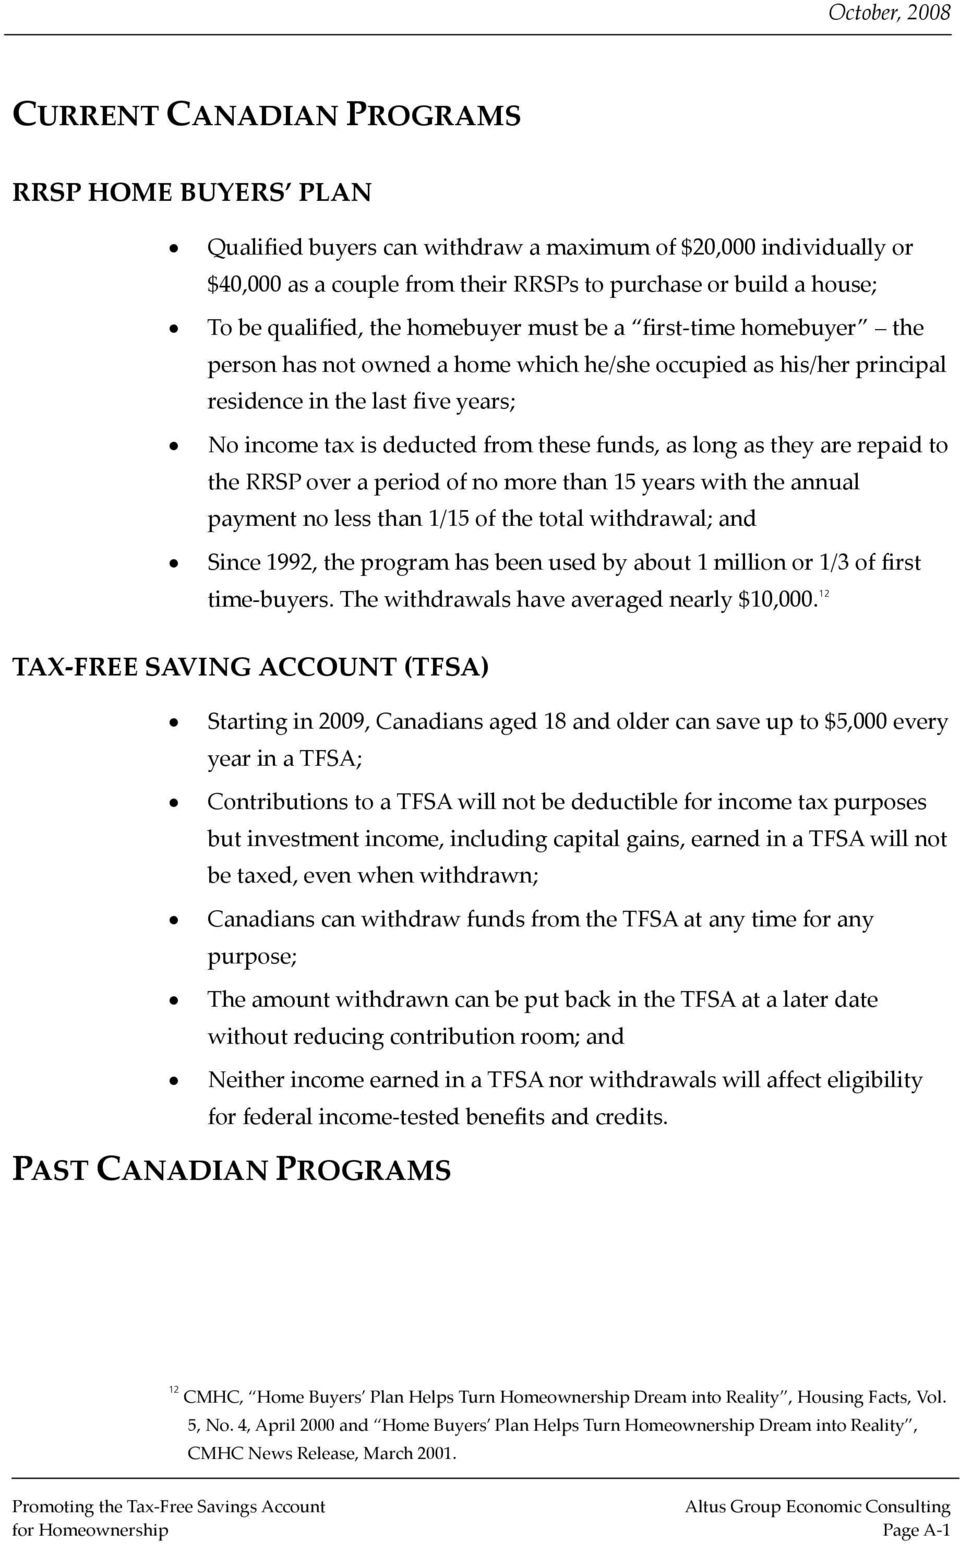 as long as they are repaid to the RRSP over a period of no more than 15 years with the annual payment no less than 1/15 of the total withdrawal; and Since 1992, the program has been used by about 1